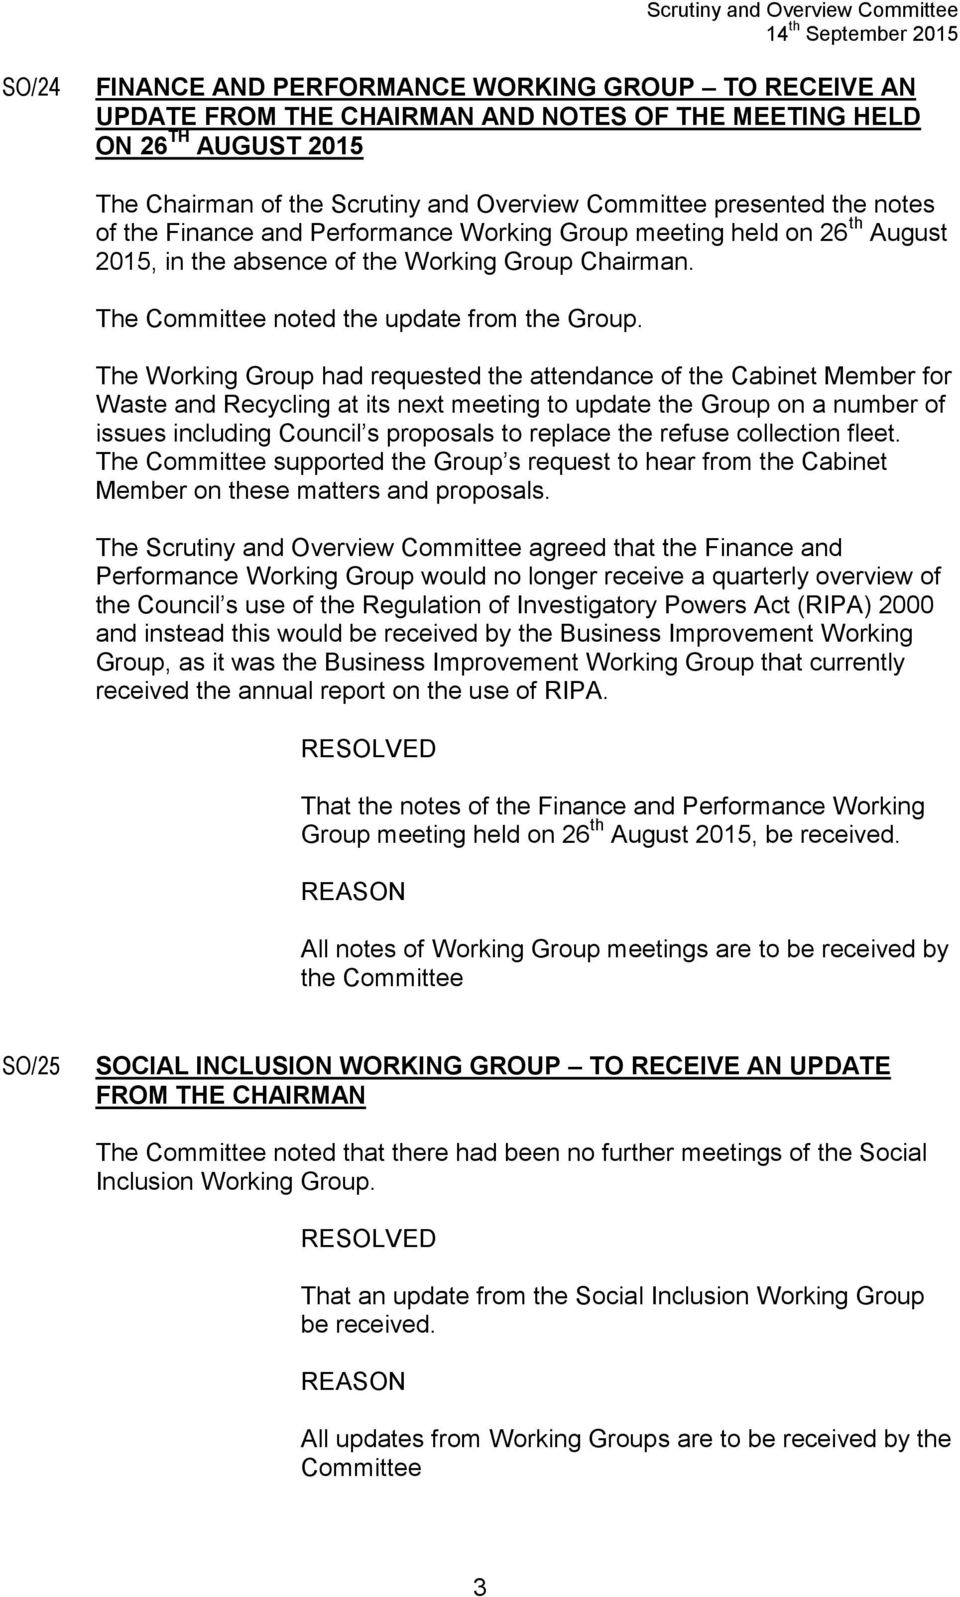 The Working Group had requested the attendance of the Cabinet Member for Waste and Recycling at its next meeting to update the Group on a number of issues including Council s proposals to replace the